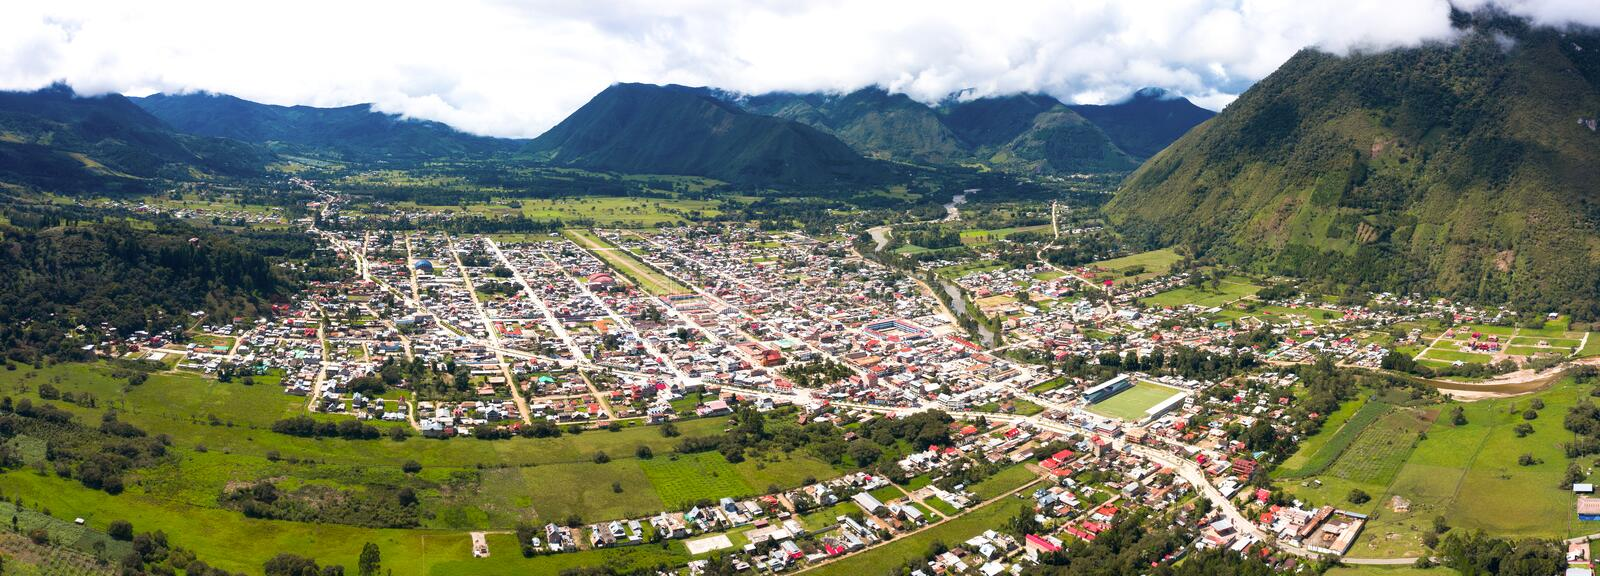 Aerial view of Oxapampa city in Peru royalty free stock photos